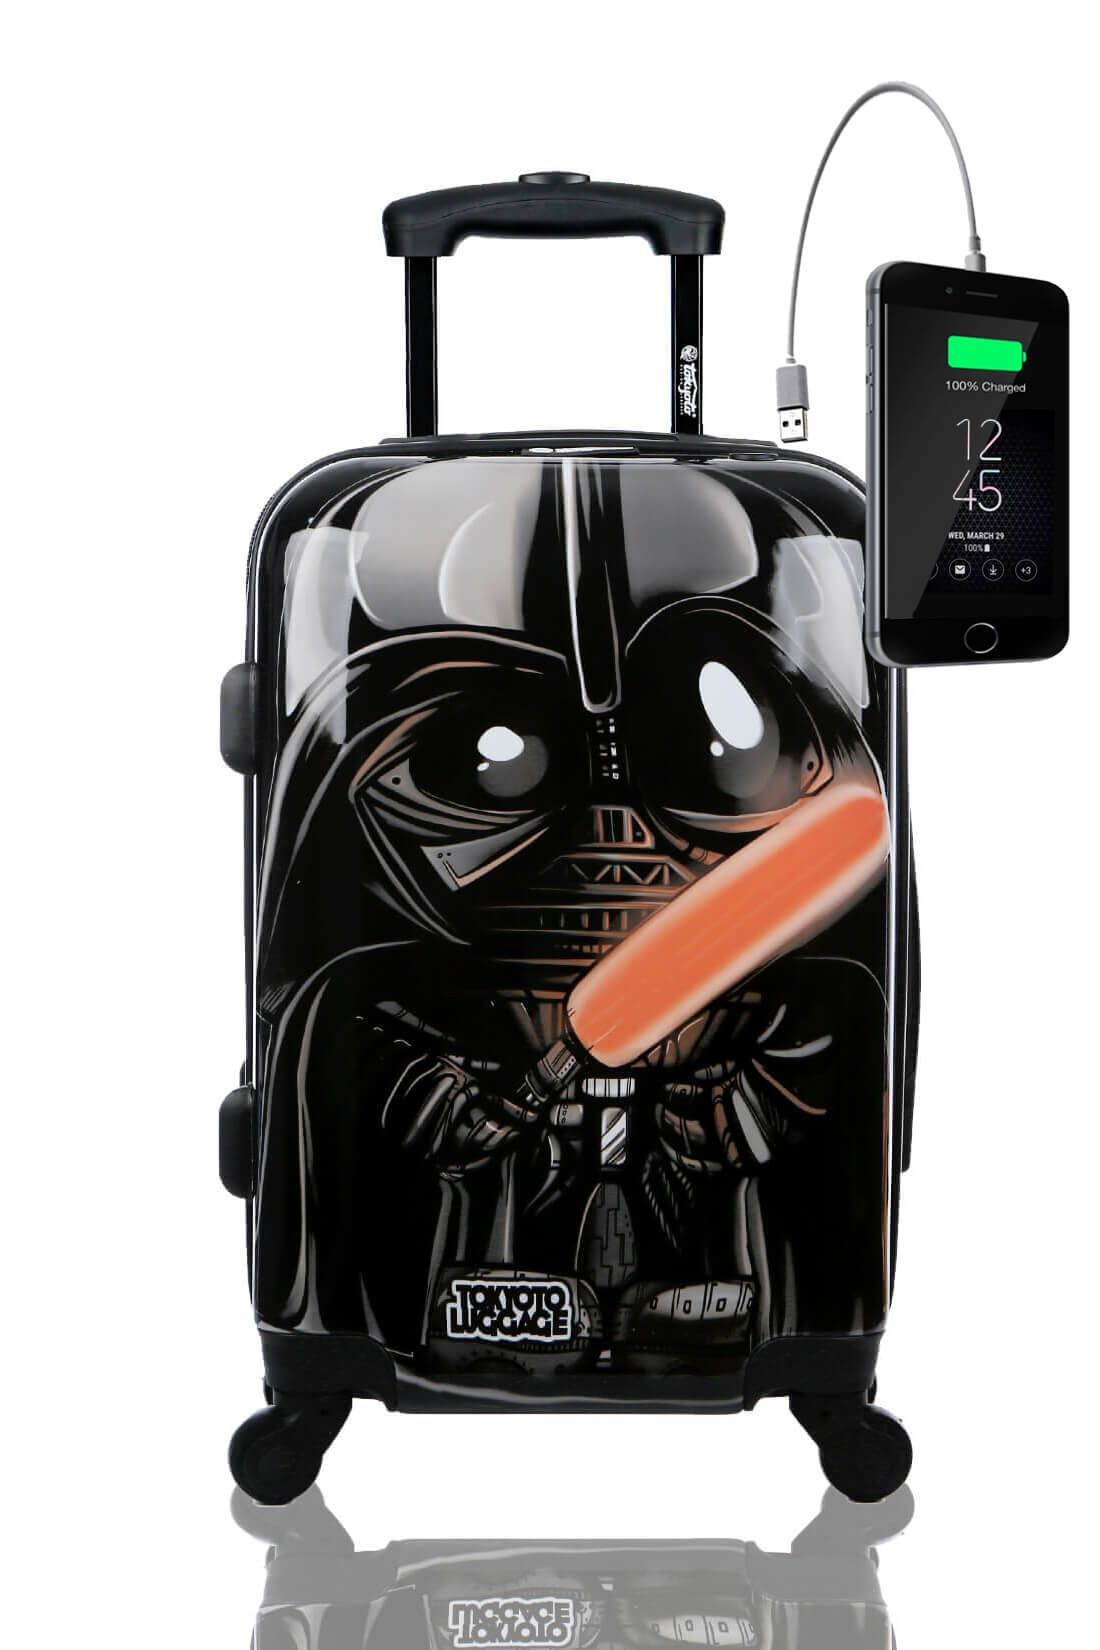 Kids Hand Trolley Cabin Luggage Suitcase Online Powerbank USB TOKYOTO BLACK EMPIRE